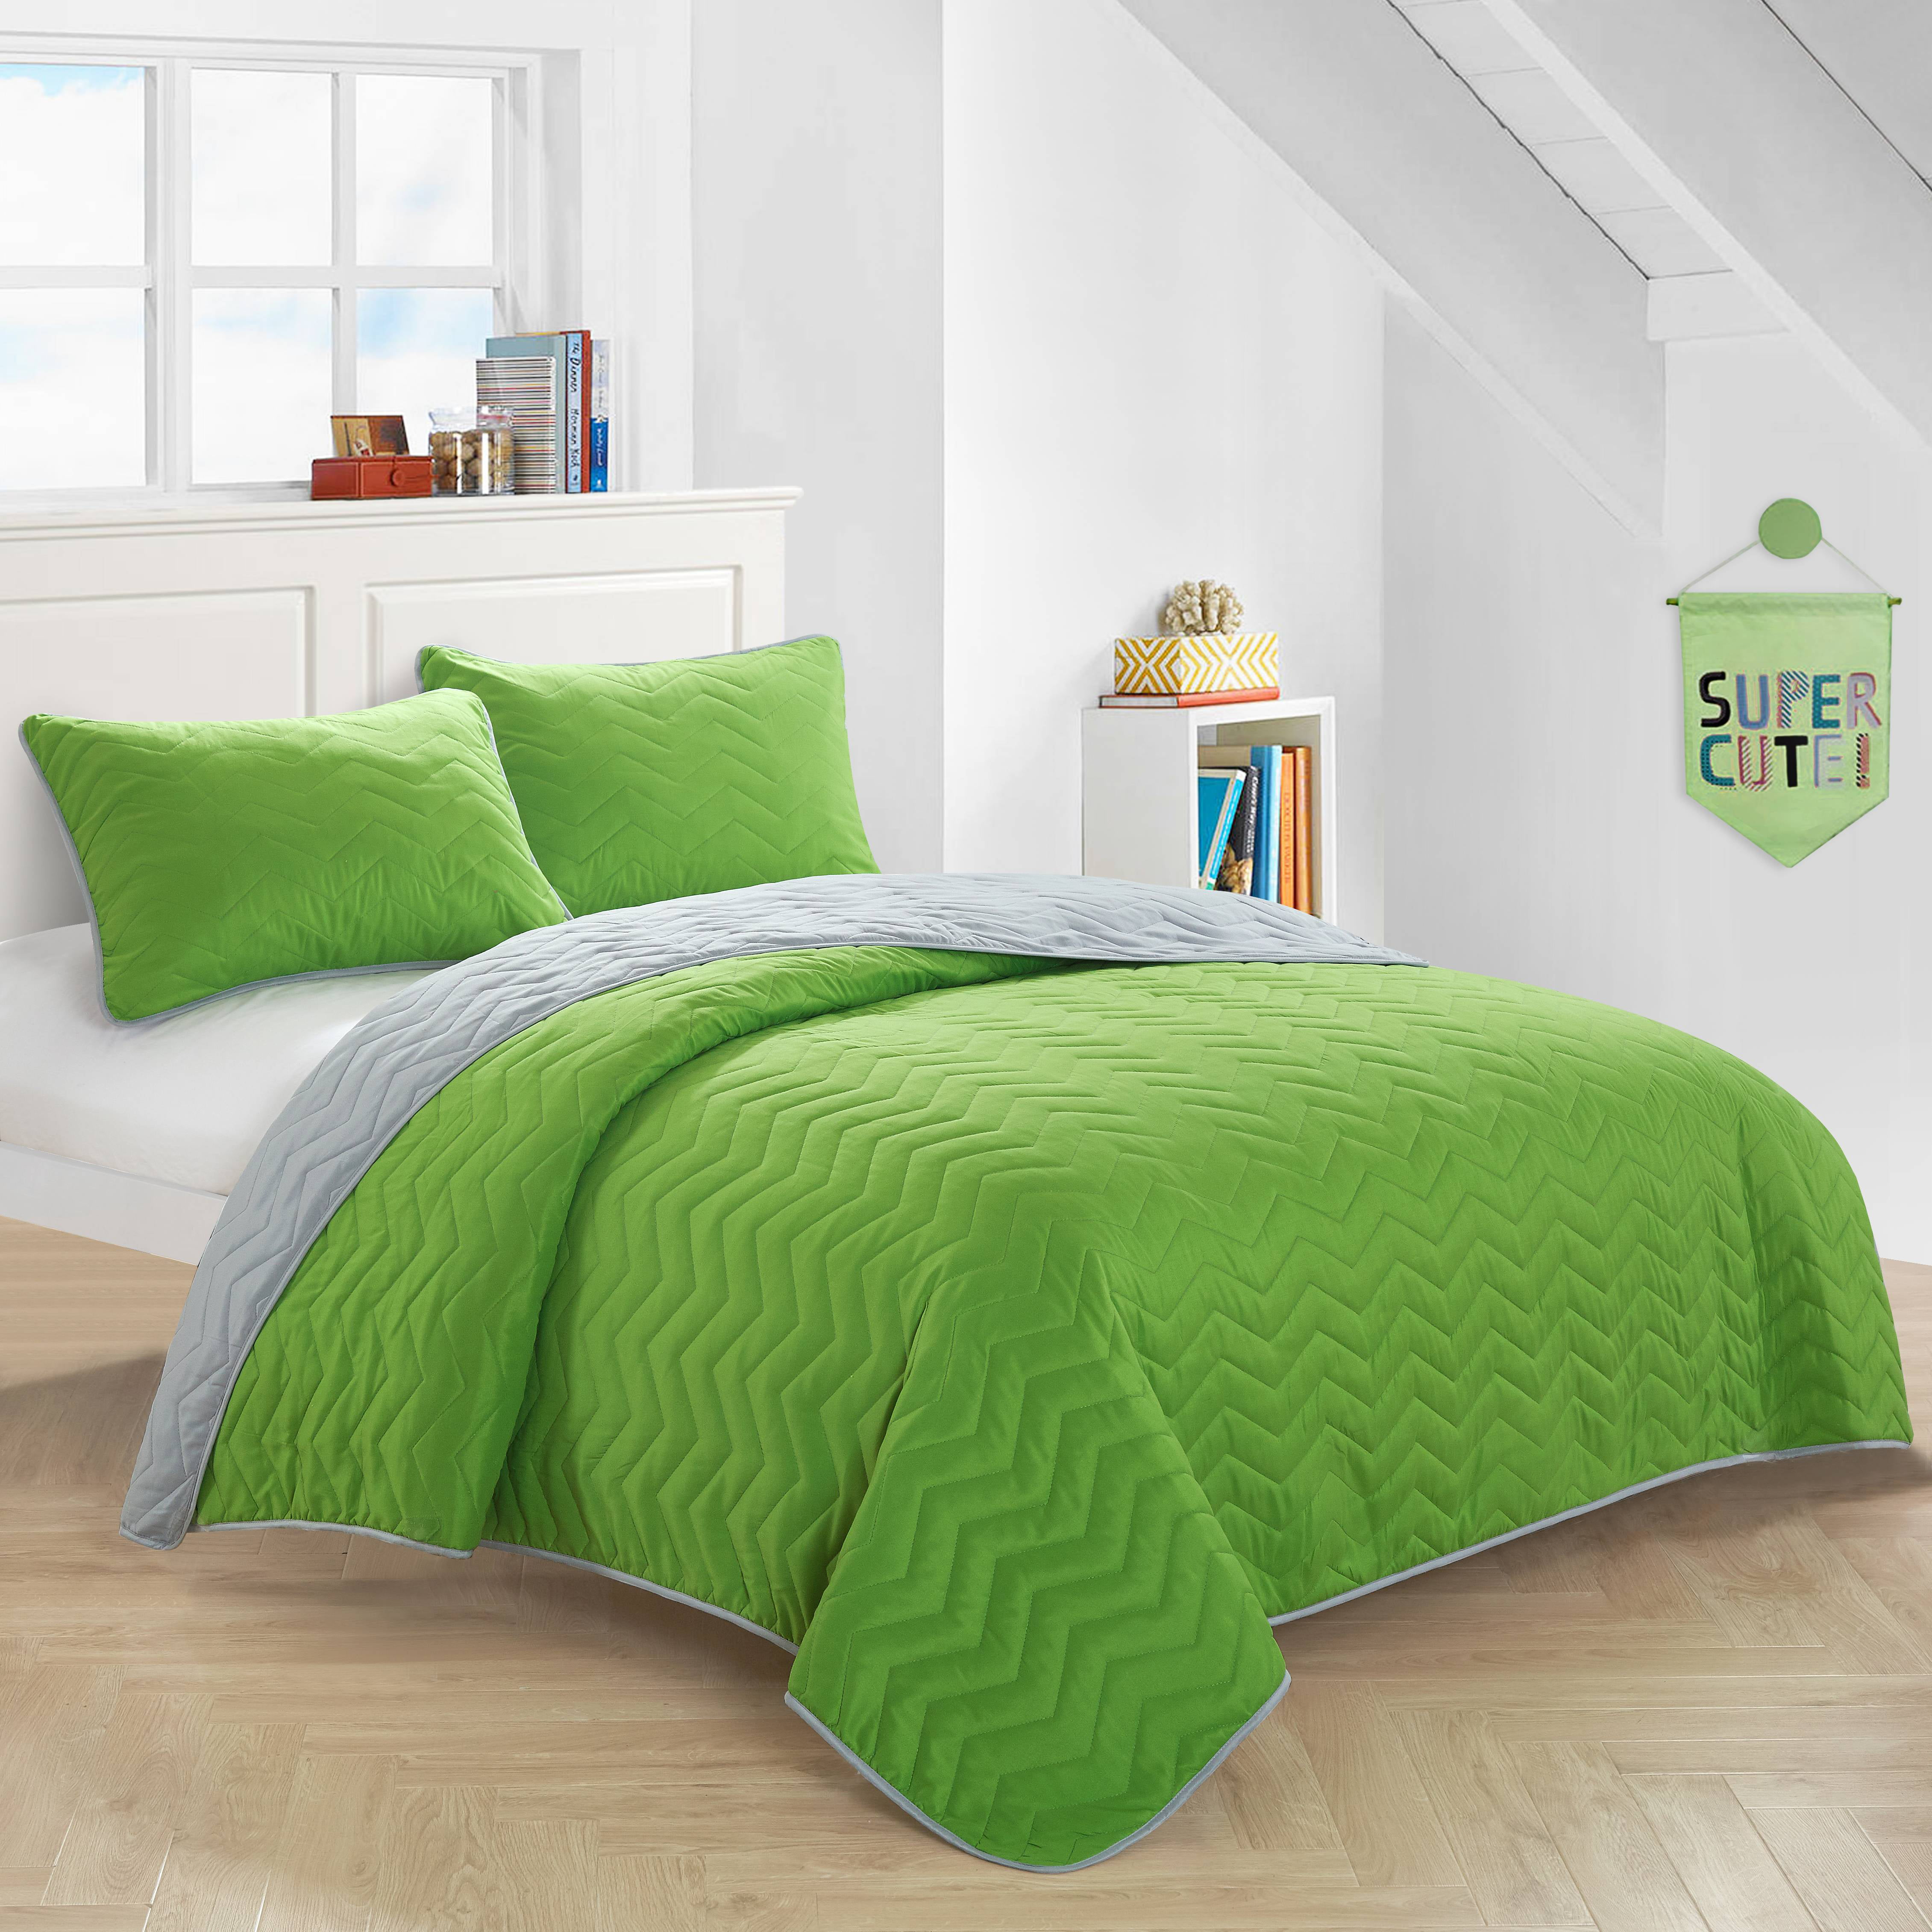 Mainstays Kids Green Reverse To Gray Quilt Set by Idea Nuova